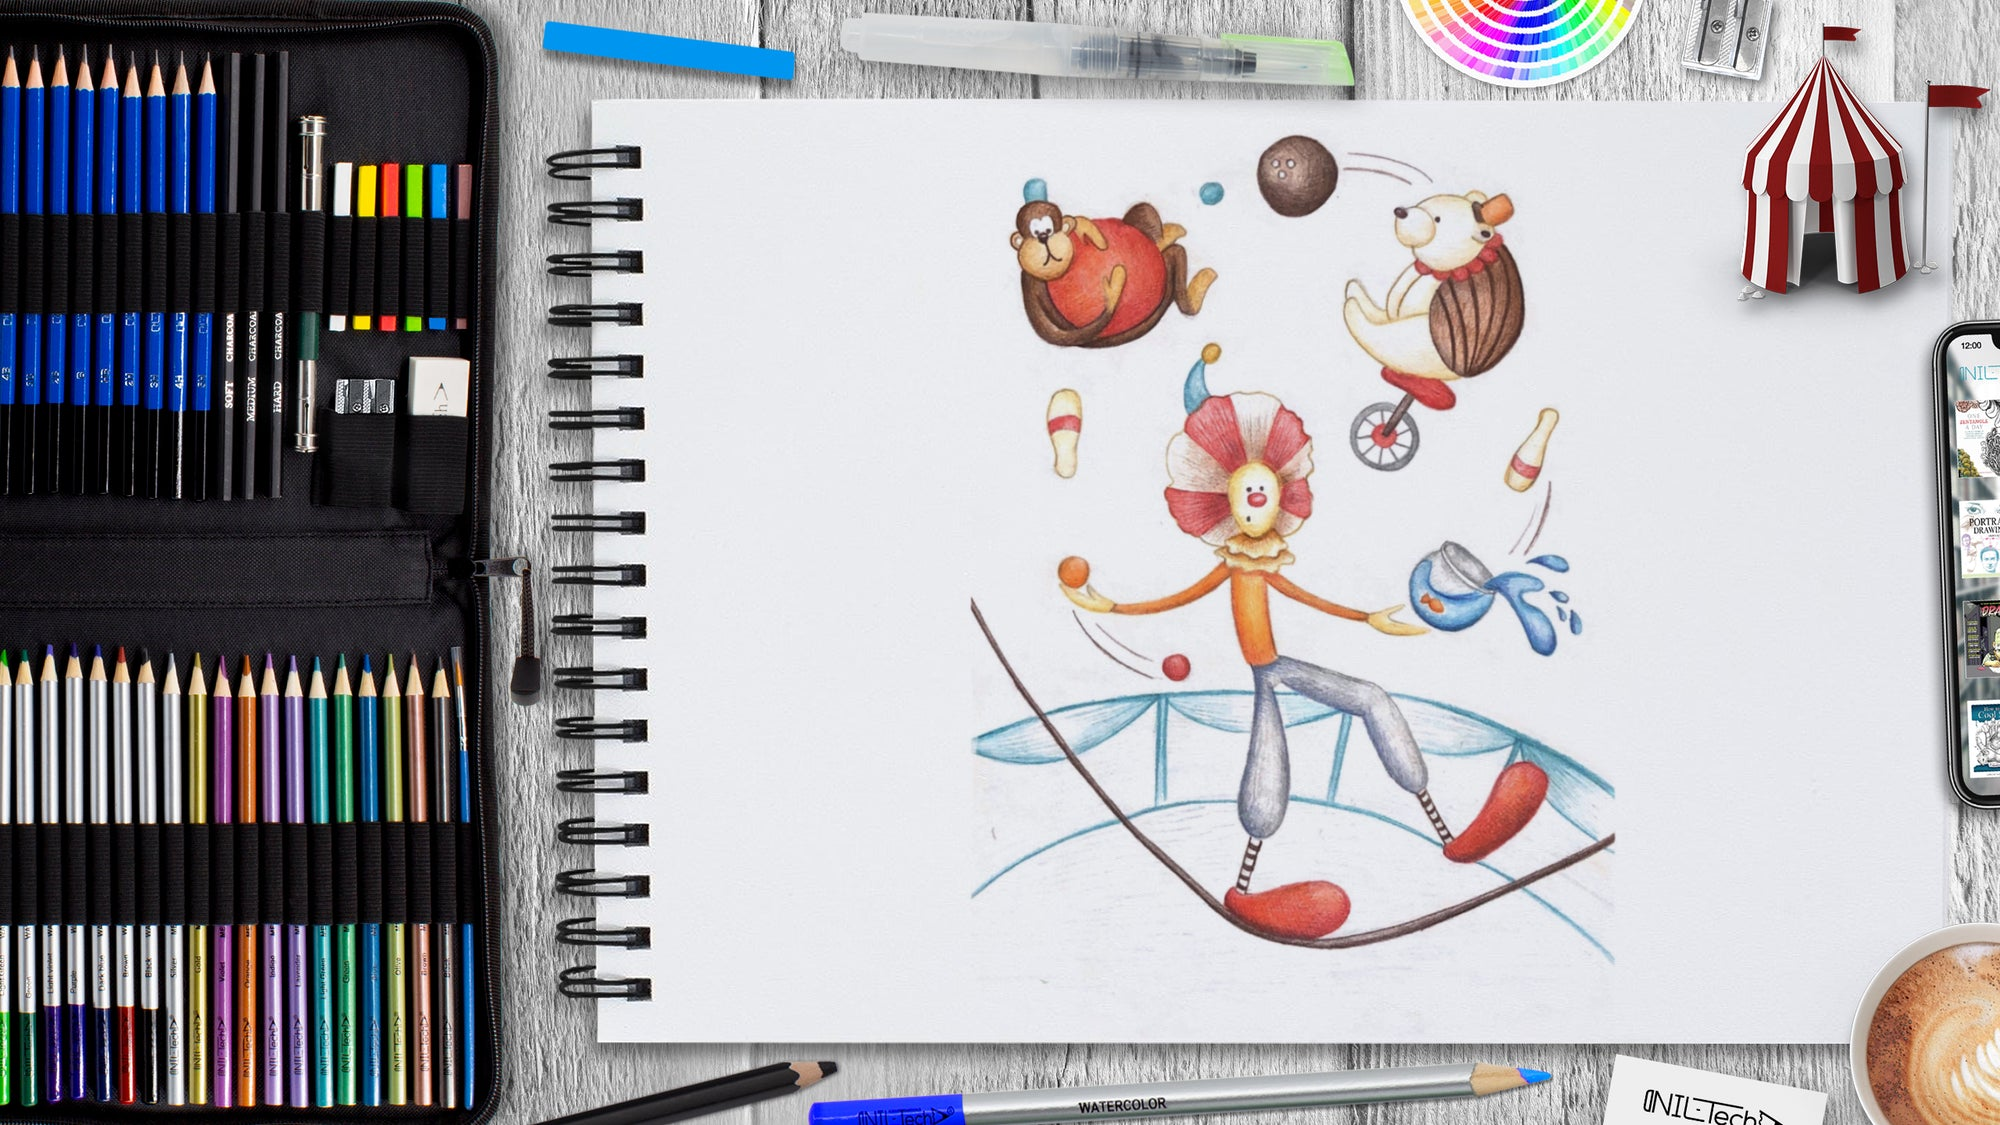 How to Draw Clown: World Circus Day